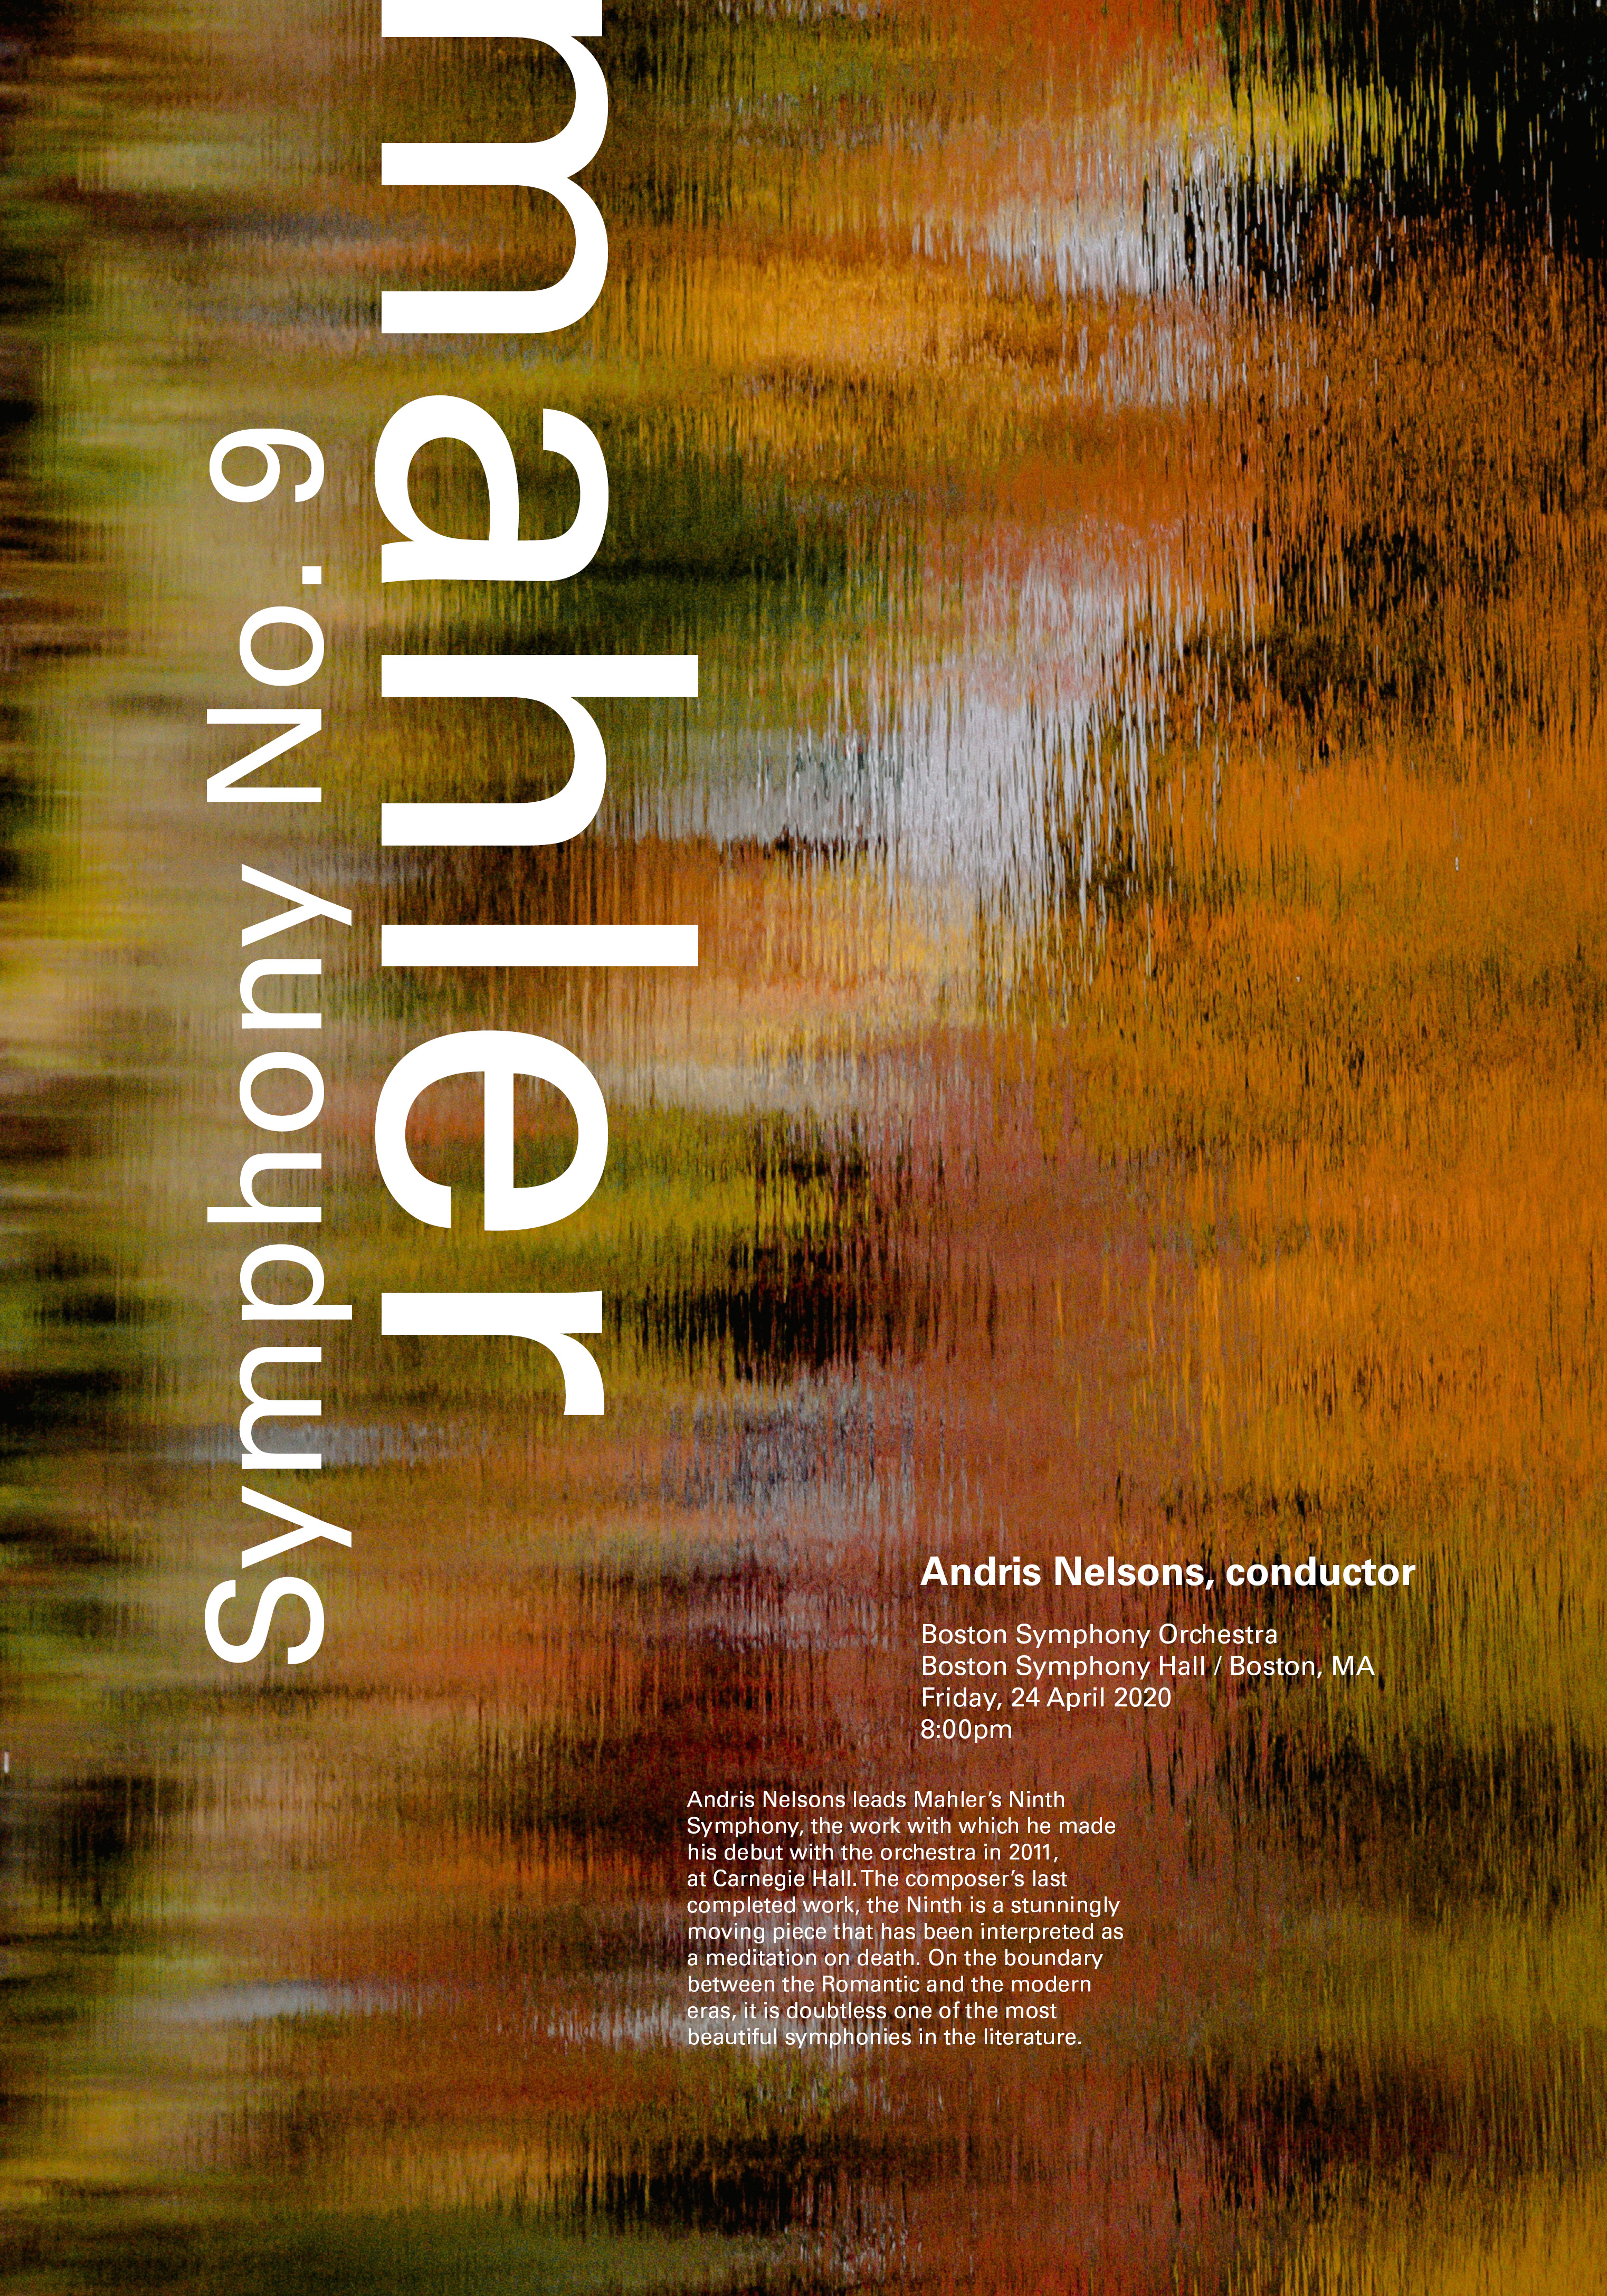 poster with abstract red, orange, and green background,                  with 'Mahler' and 'Symphony no.9' written in large white text, and smaller text describing details of the performance